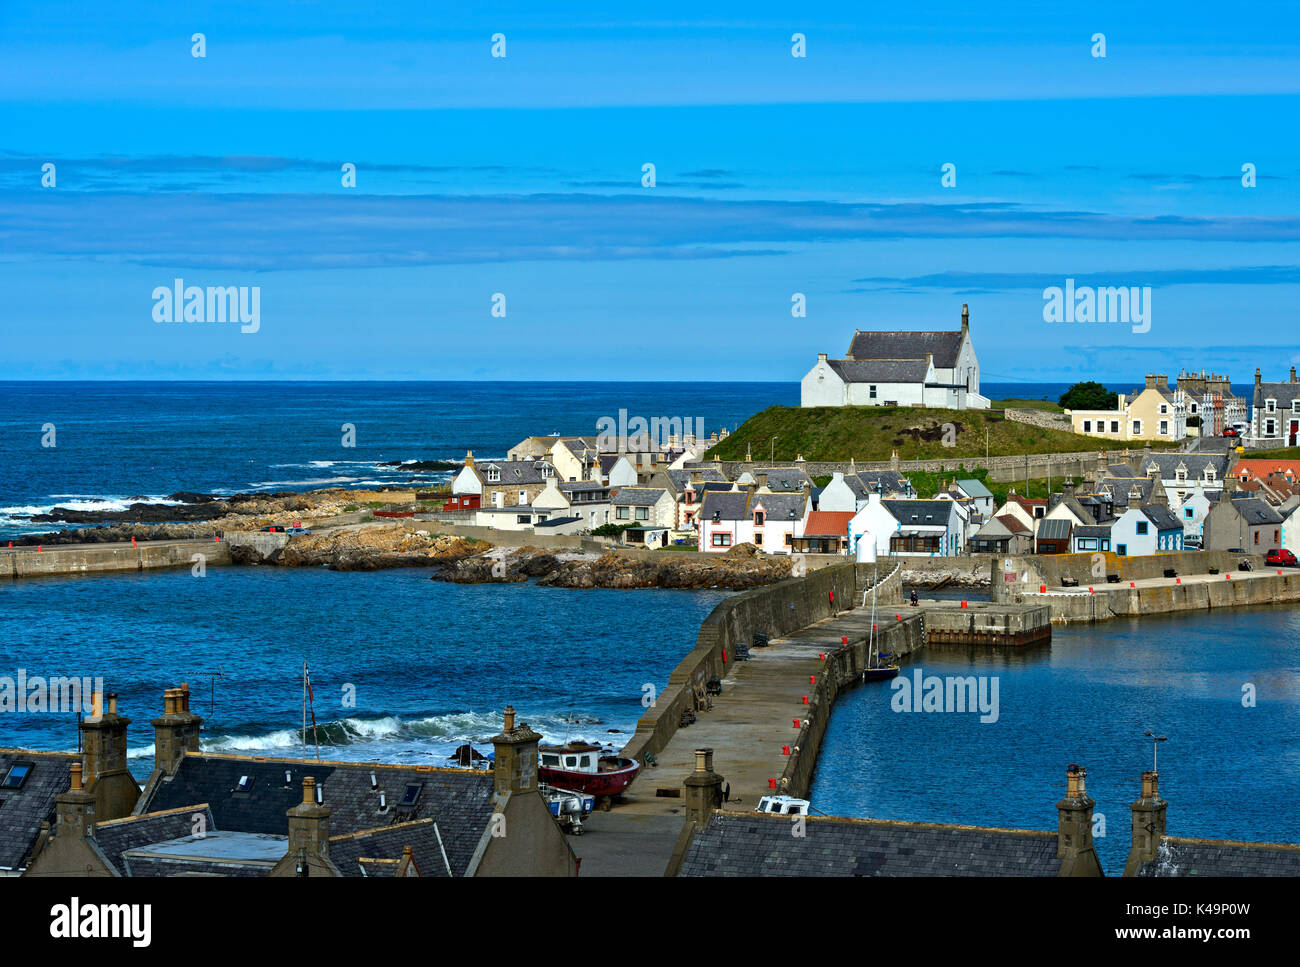 Fishing Village Findochty At The Moray Firth, Scotland, United Kingfom - Stock Image